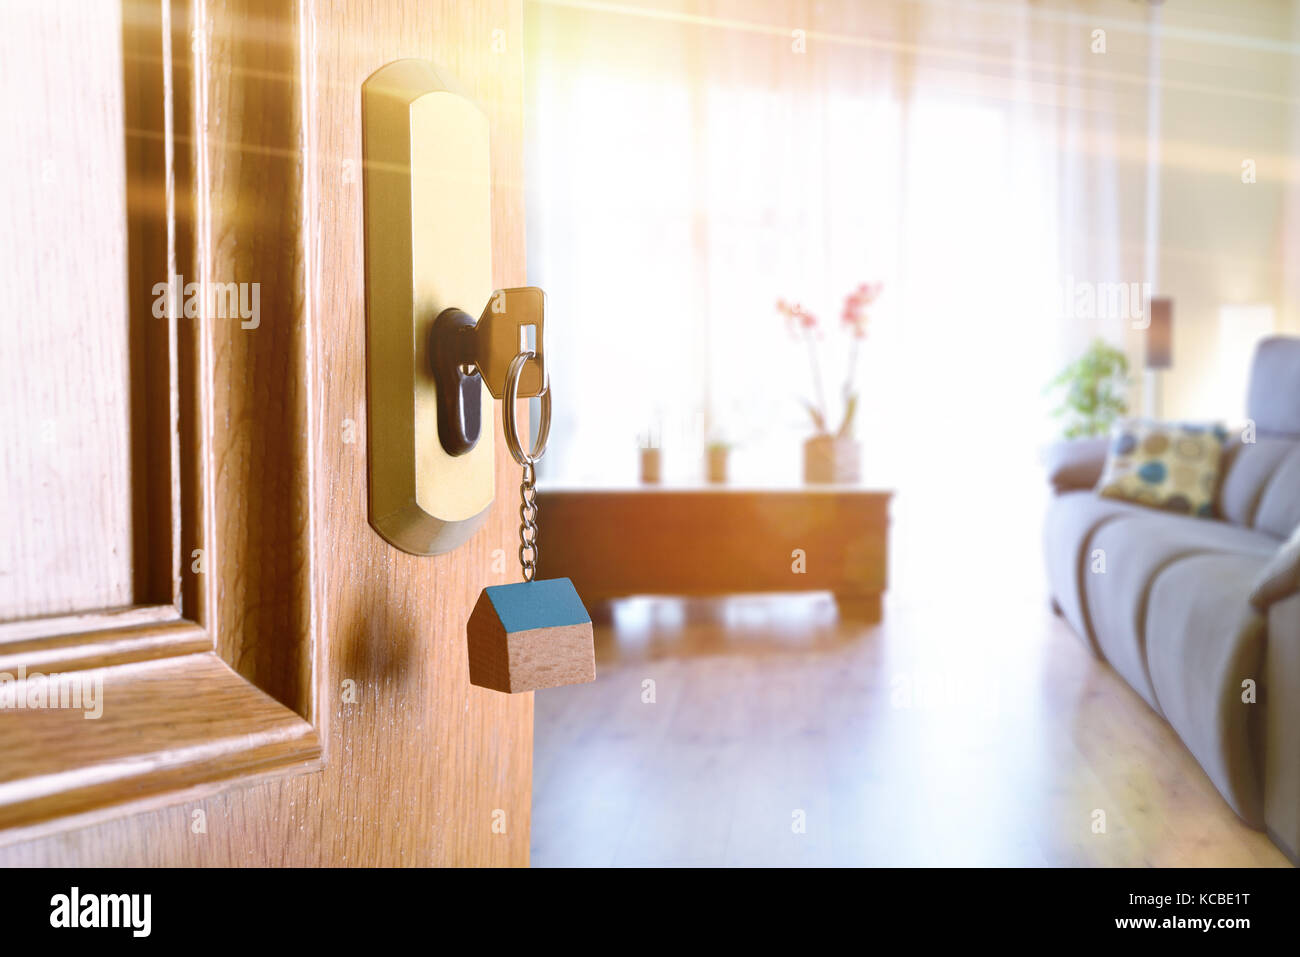 Open entrance door detail of a house with keys in the lock and furnished living room in the background with golden - Stock Image